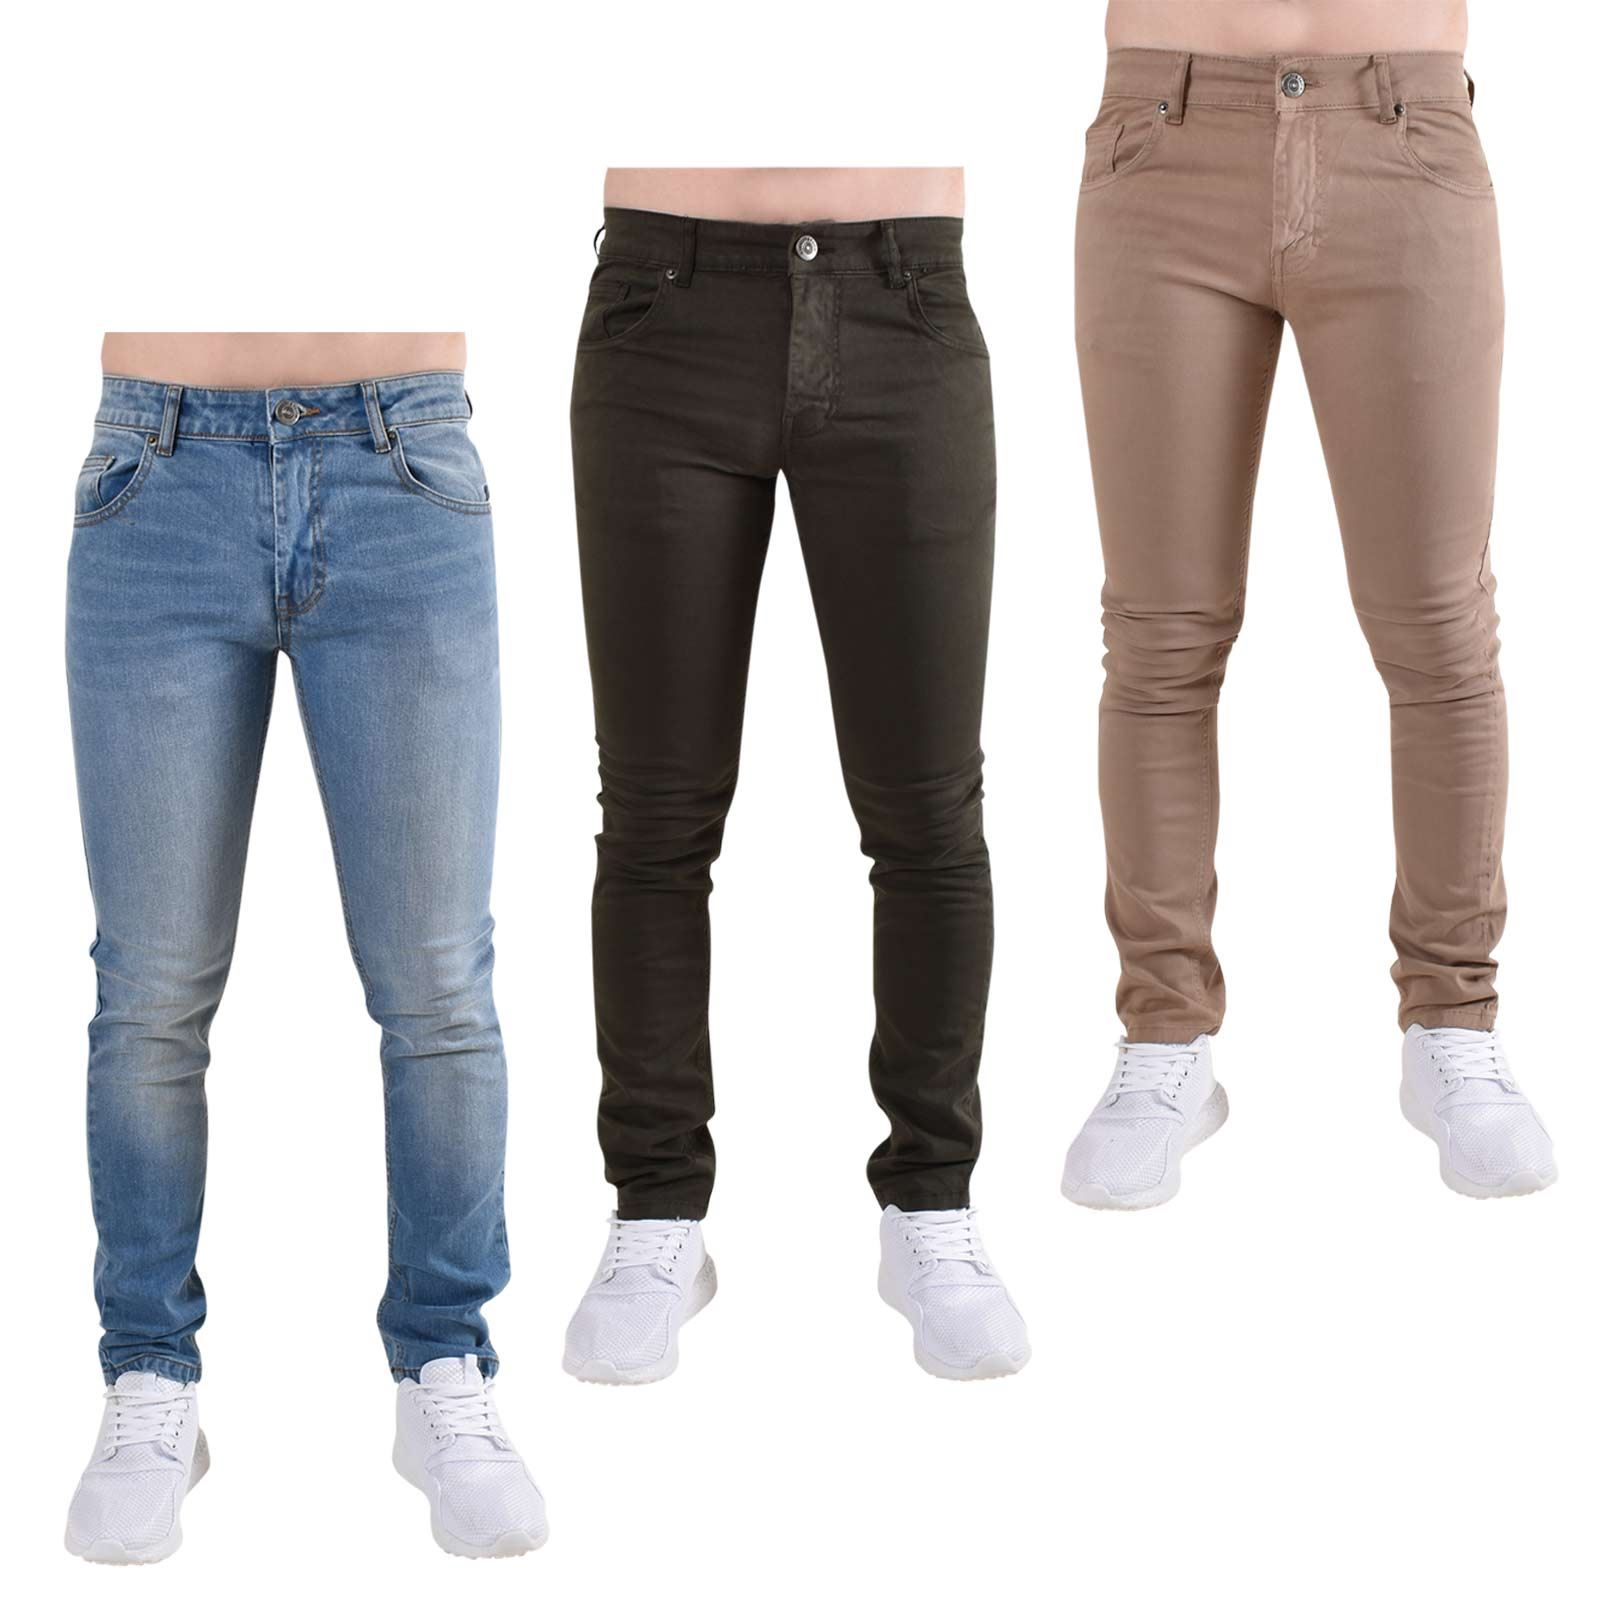 da405e5884 Details about Loyalty and Faith Mens Skinny Jeans Slim Fit Cotton Stretch Denim  Trousers Pants